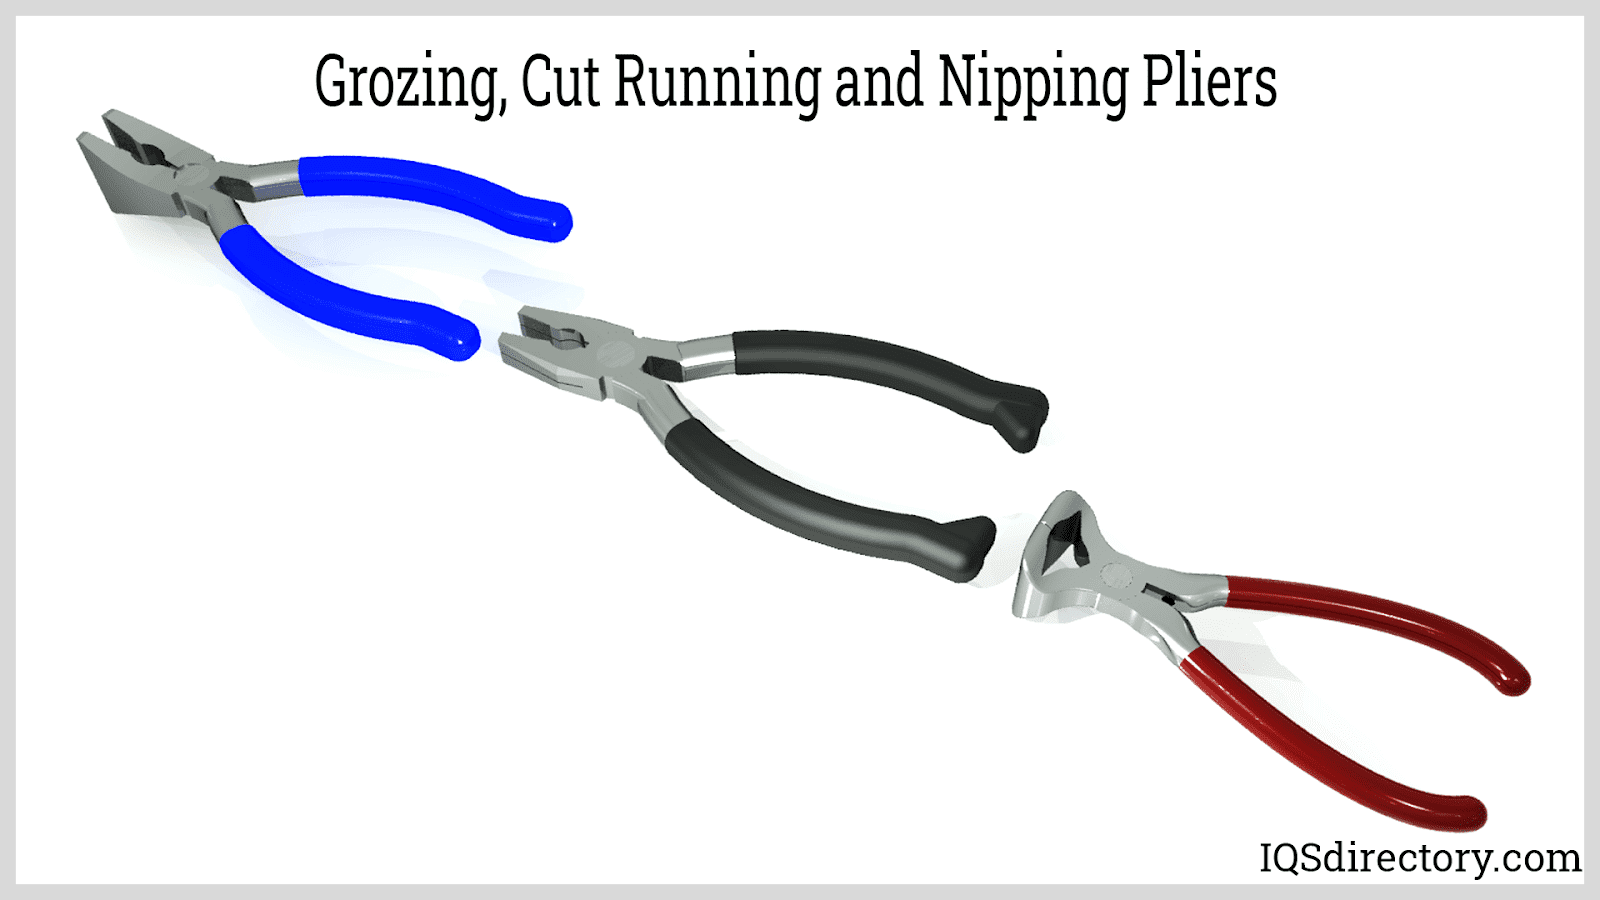 Grozing, Cut Running, and Nipping Pliers